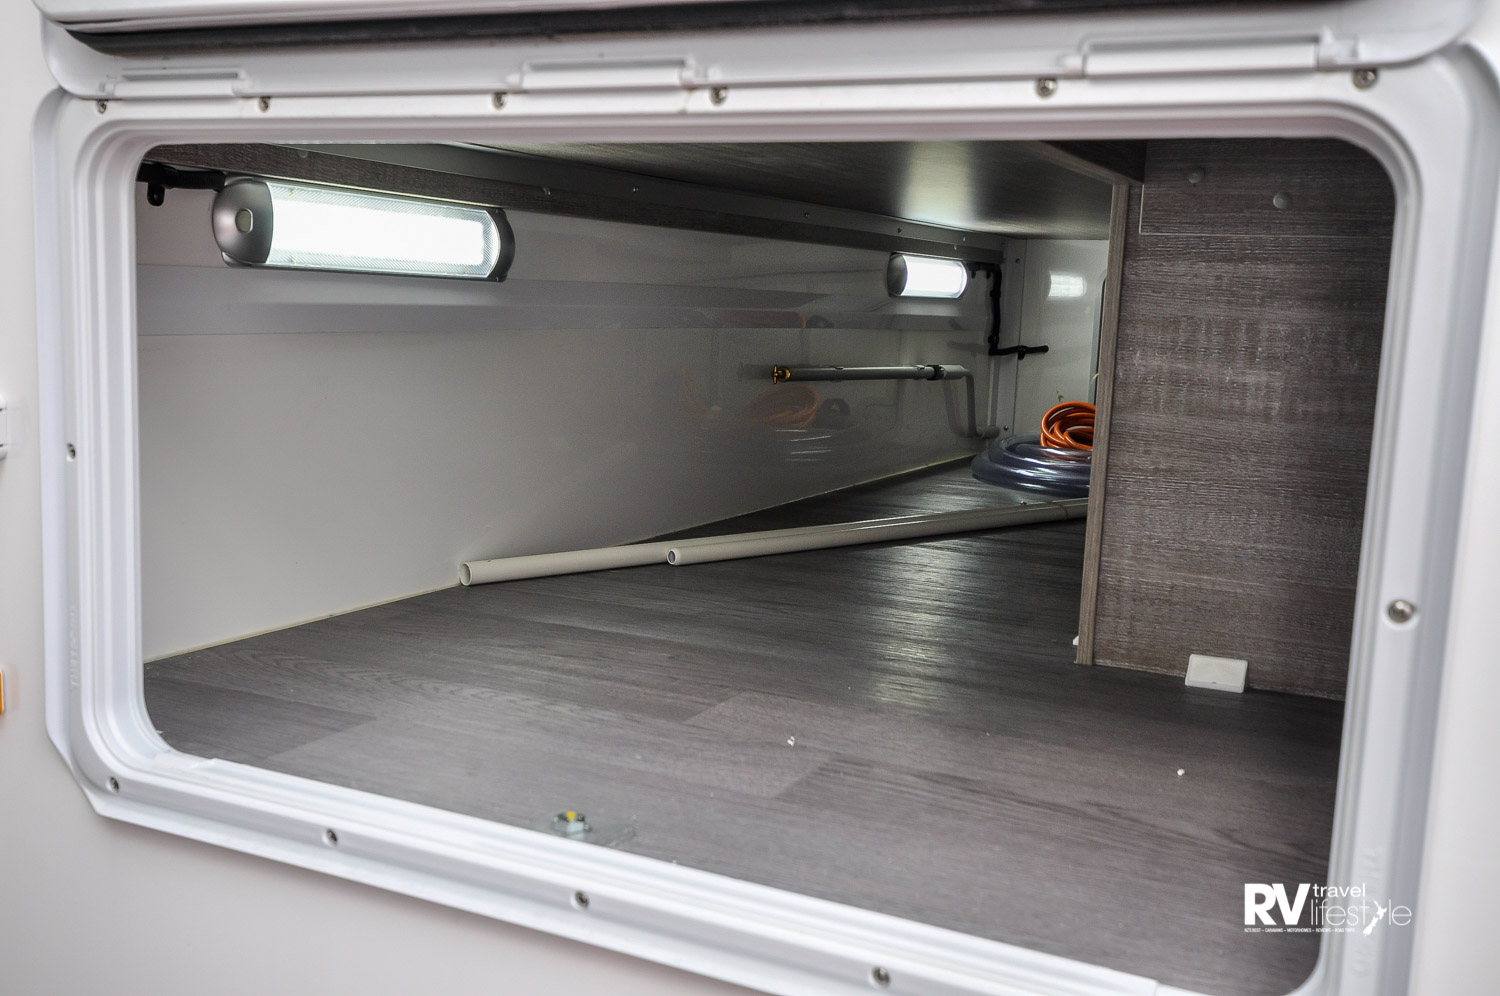 Accessed from both sides, this rear storage area is well lit, and a good size